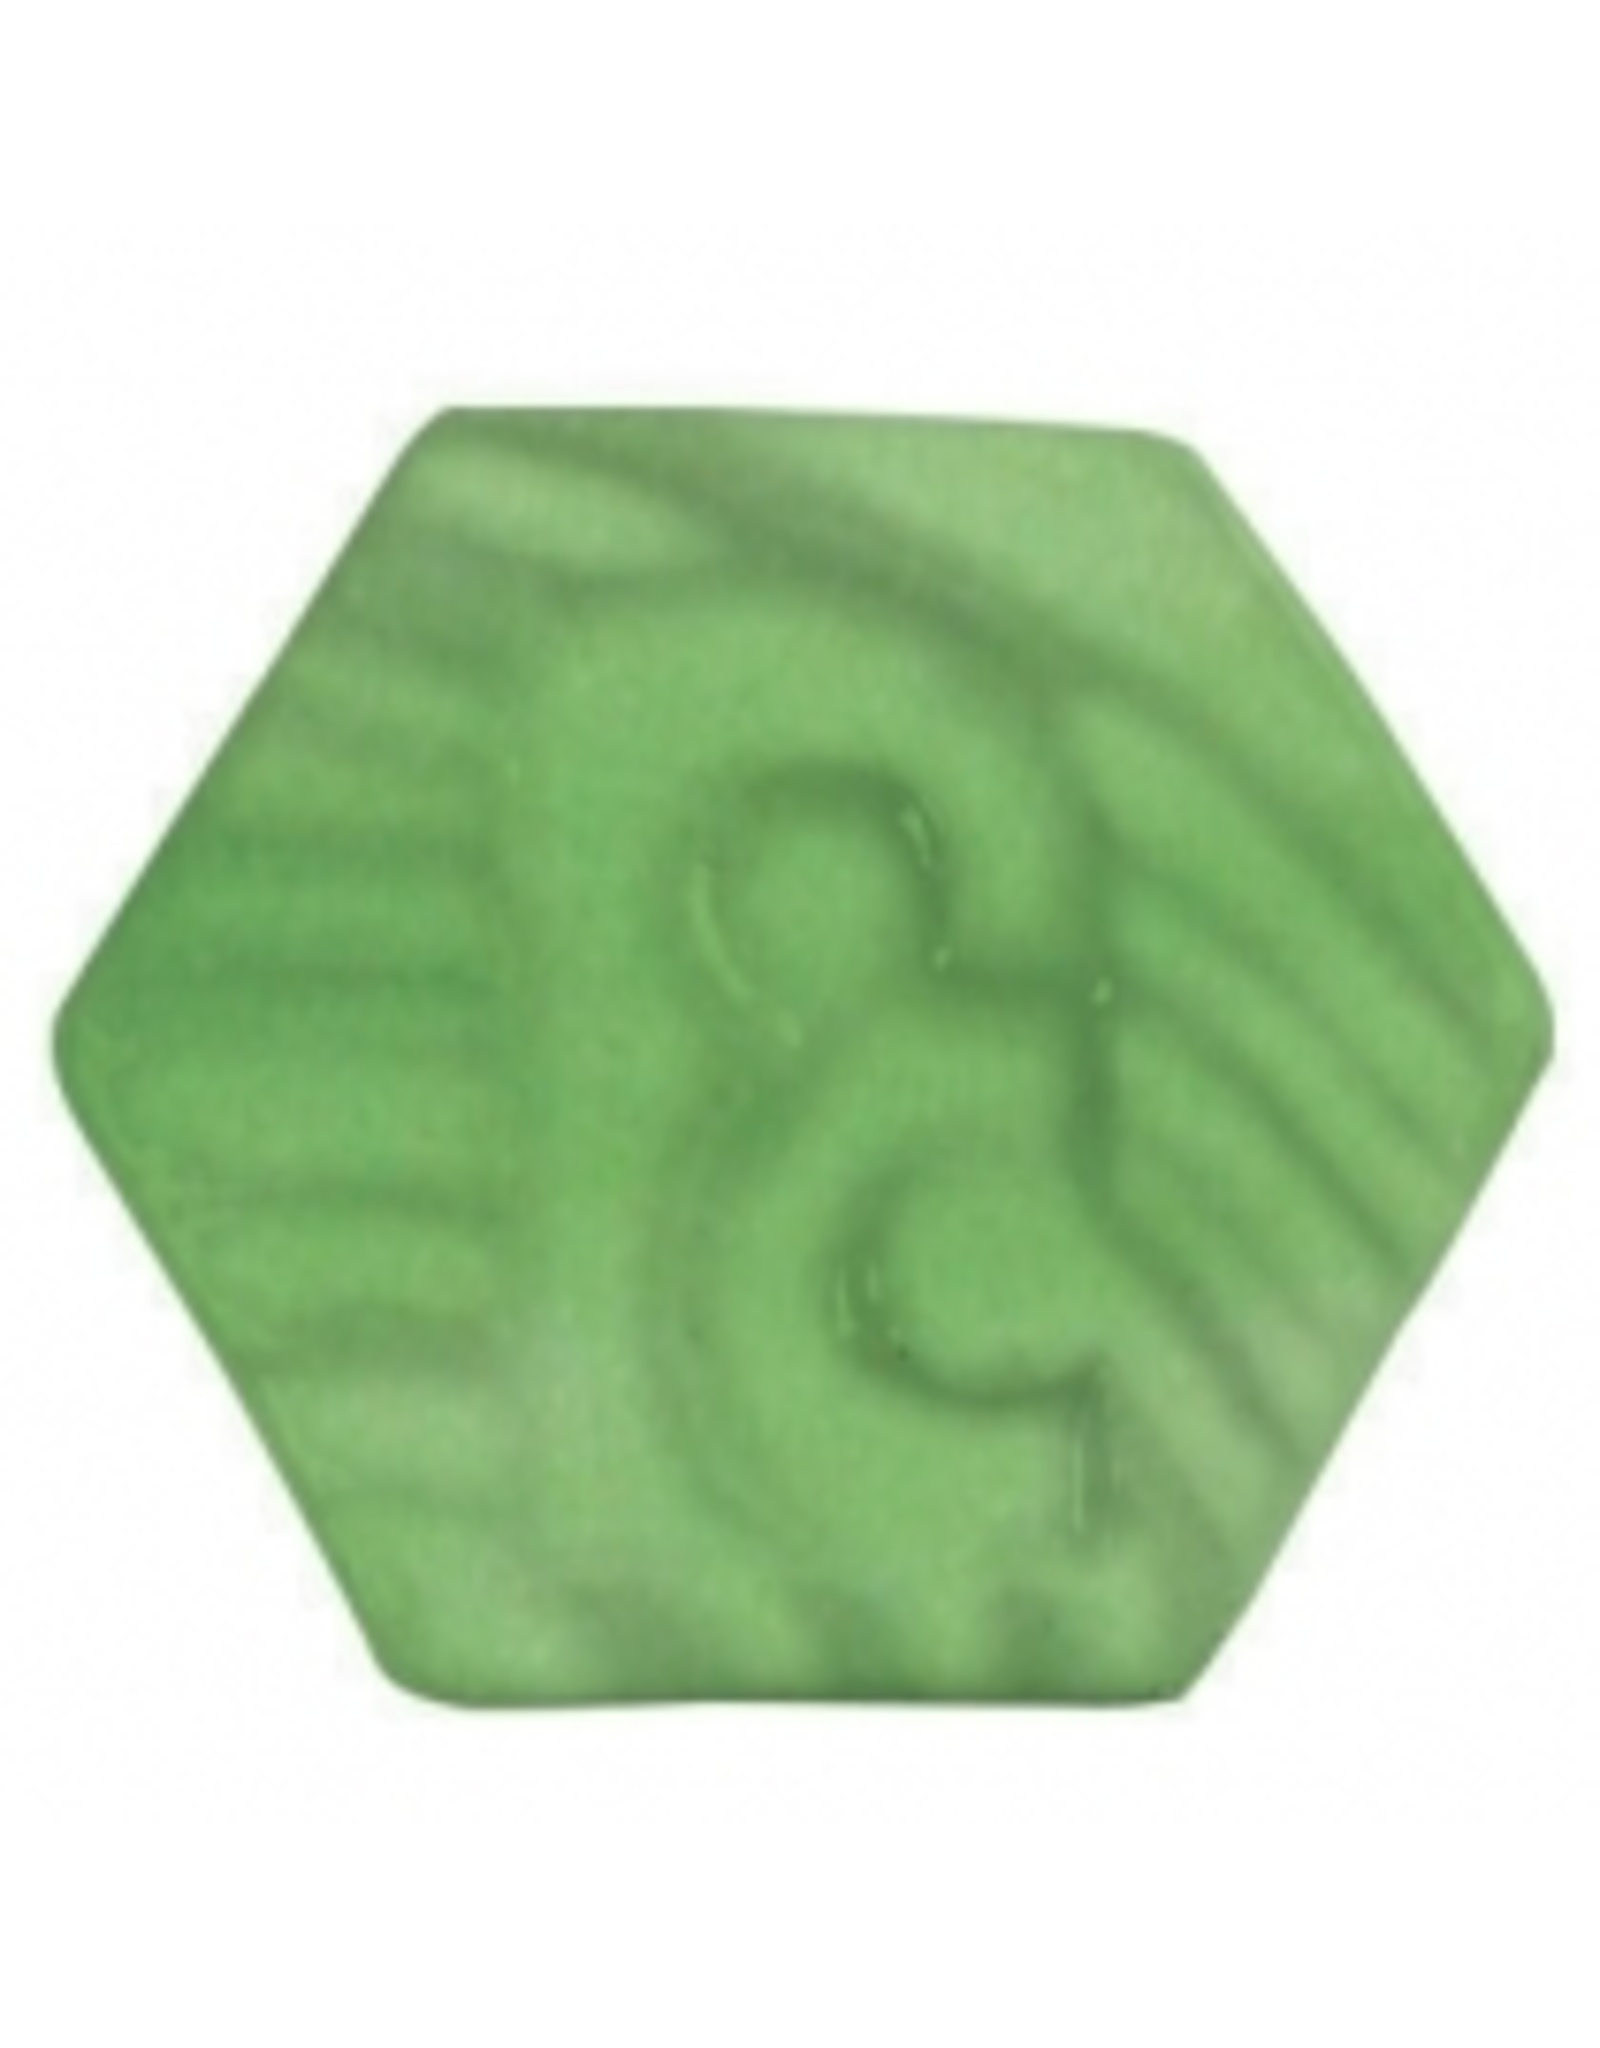 Potterycrafts Light Green On-glaze